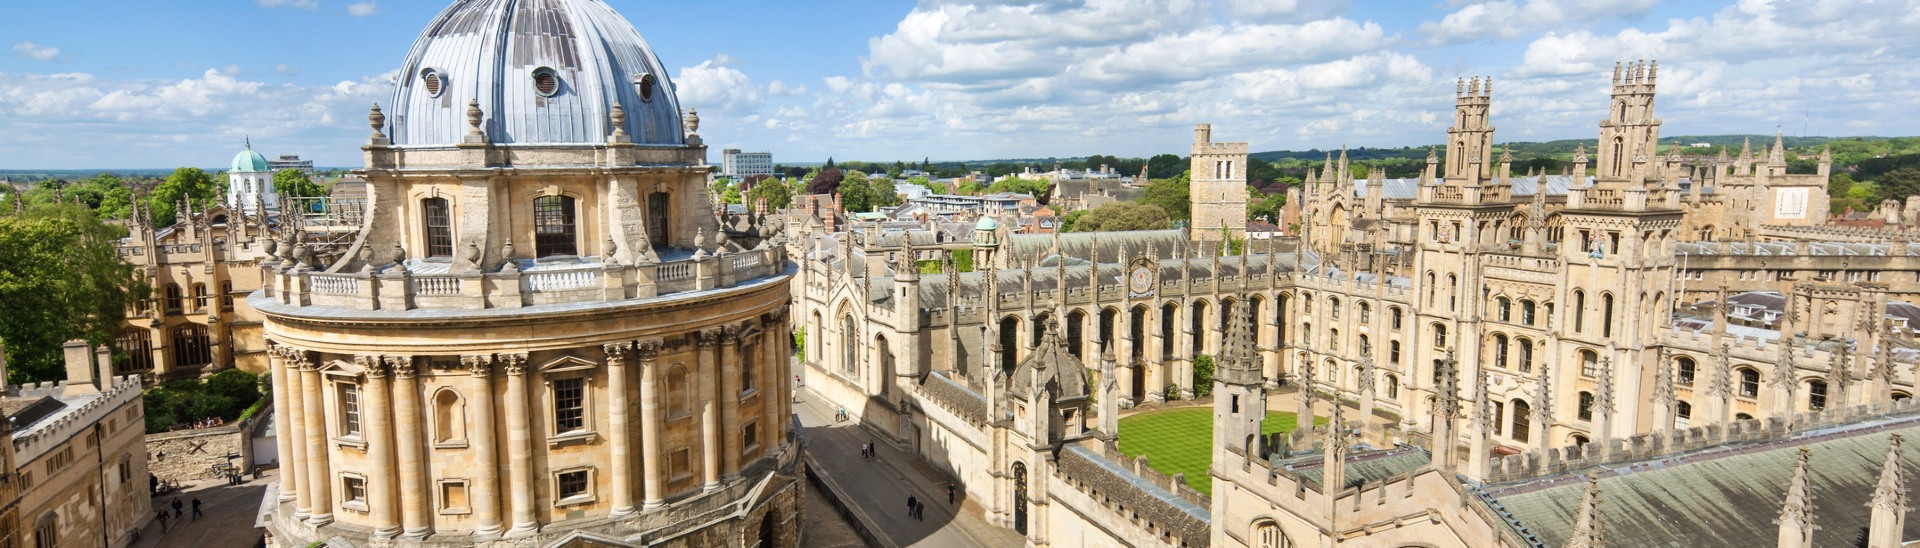 Corpus Christi college, home to Oxbridge students for the summer